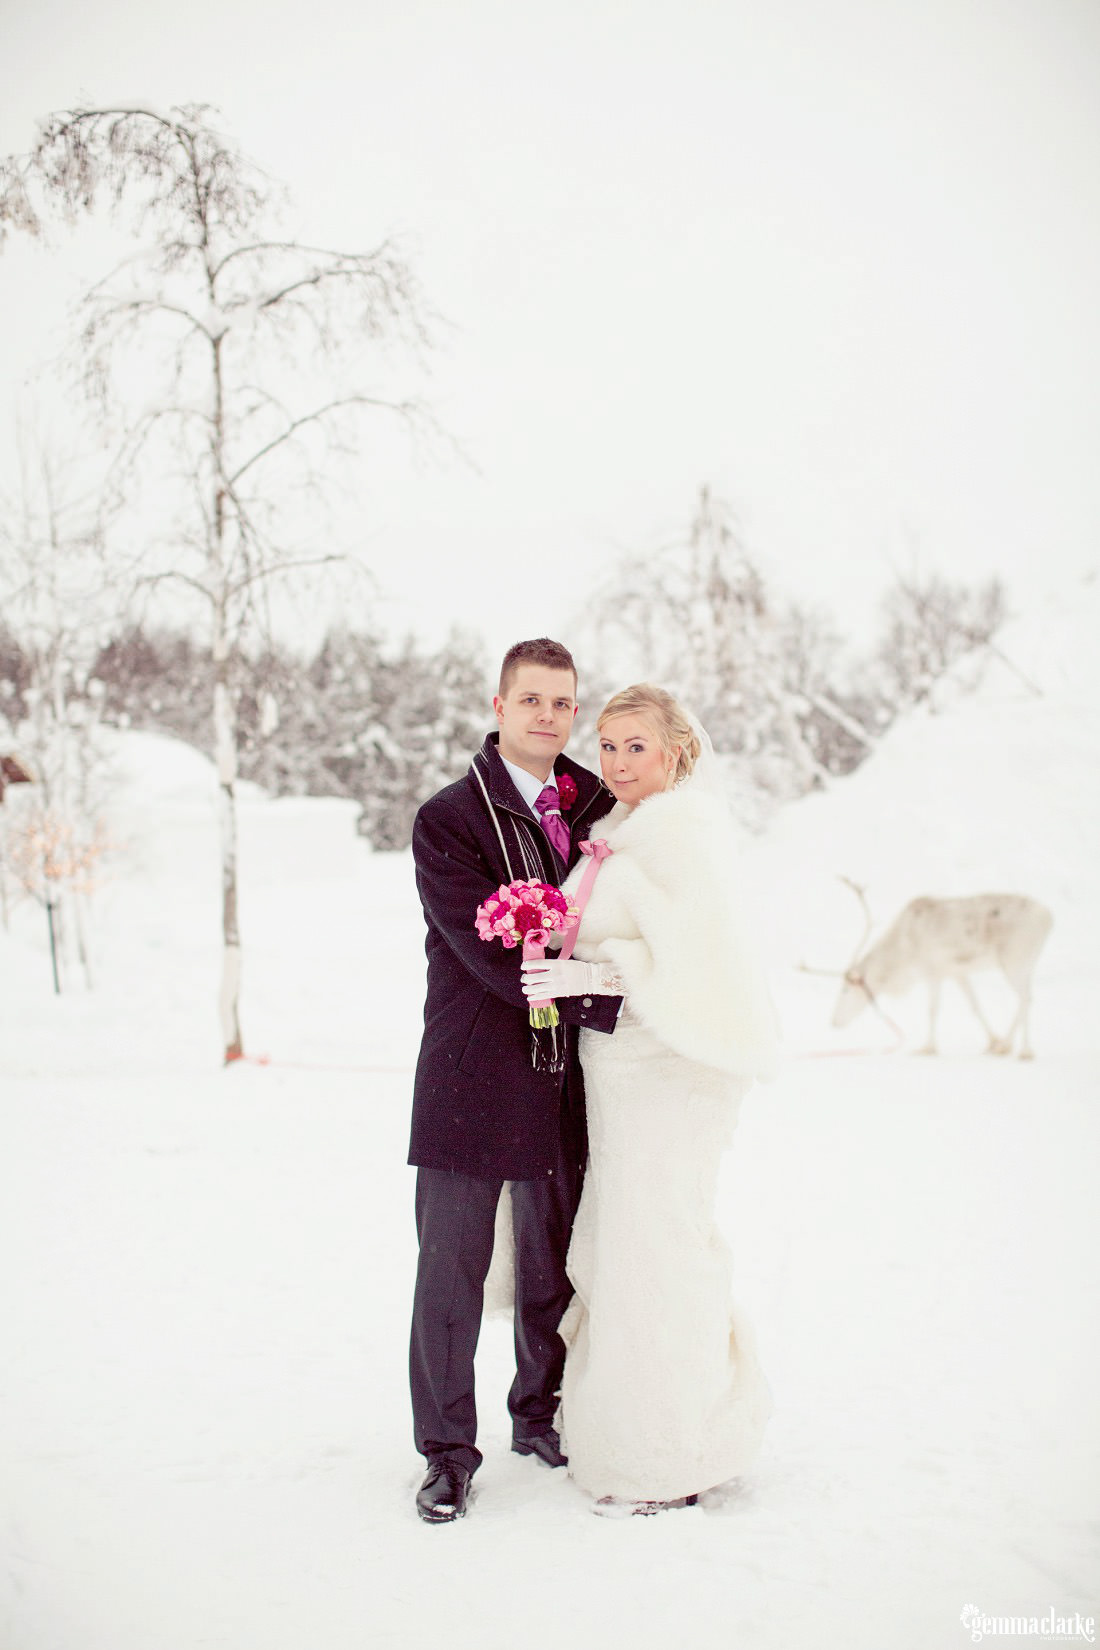 gemmaclarkephotography_winter-wedding-in-lapland-finland_jaana-and-tuomas_0022a